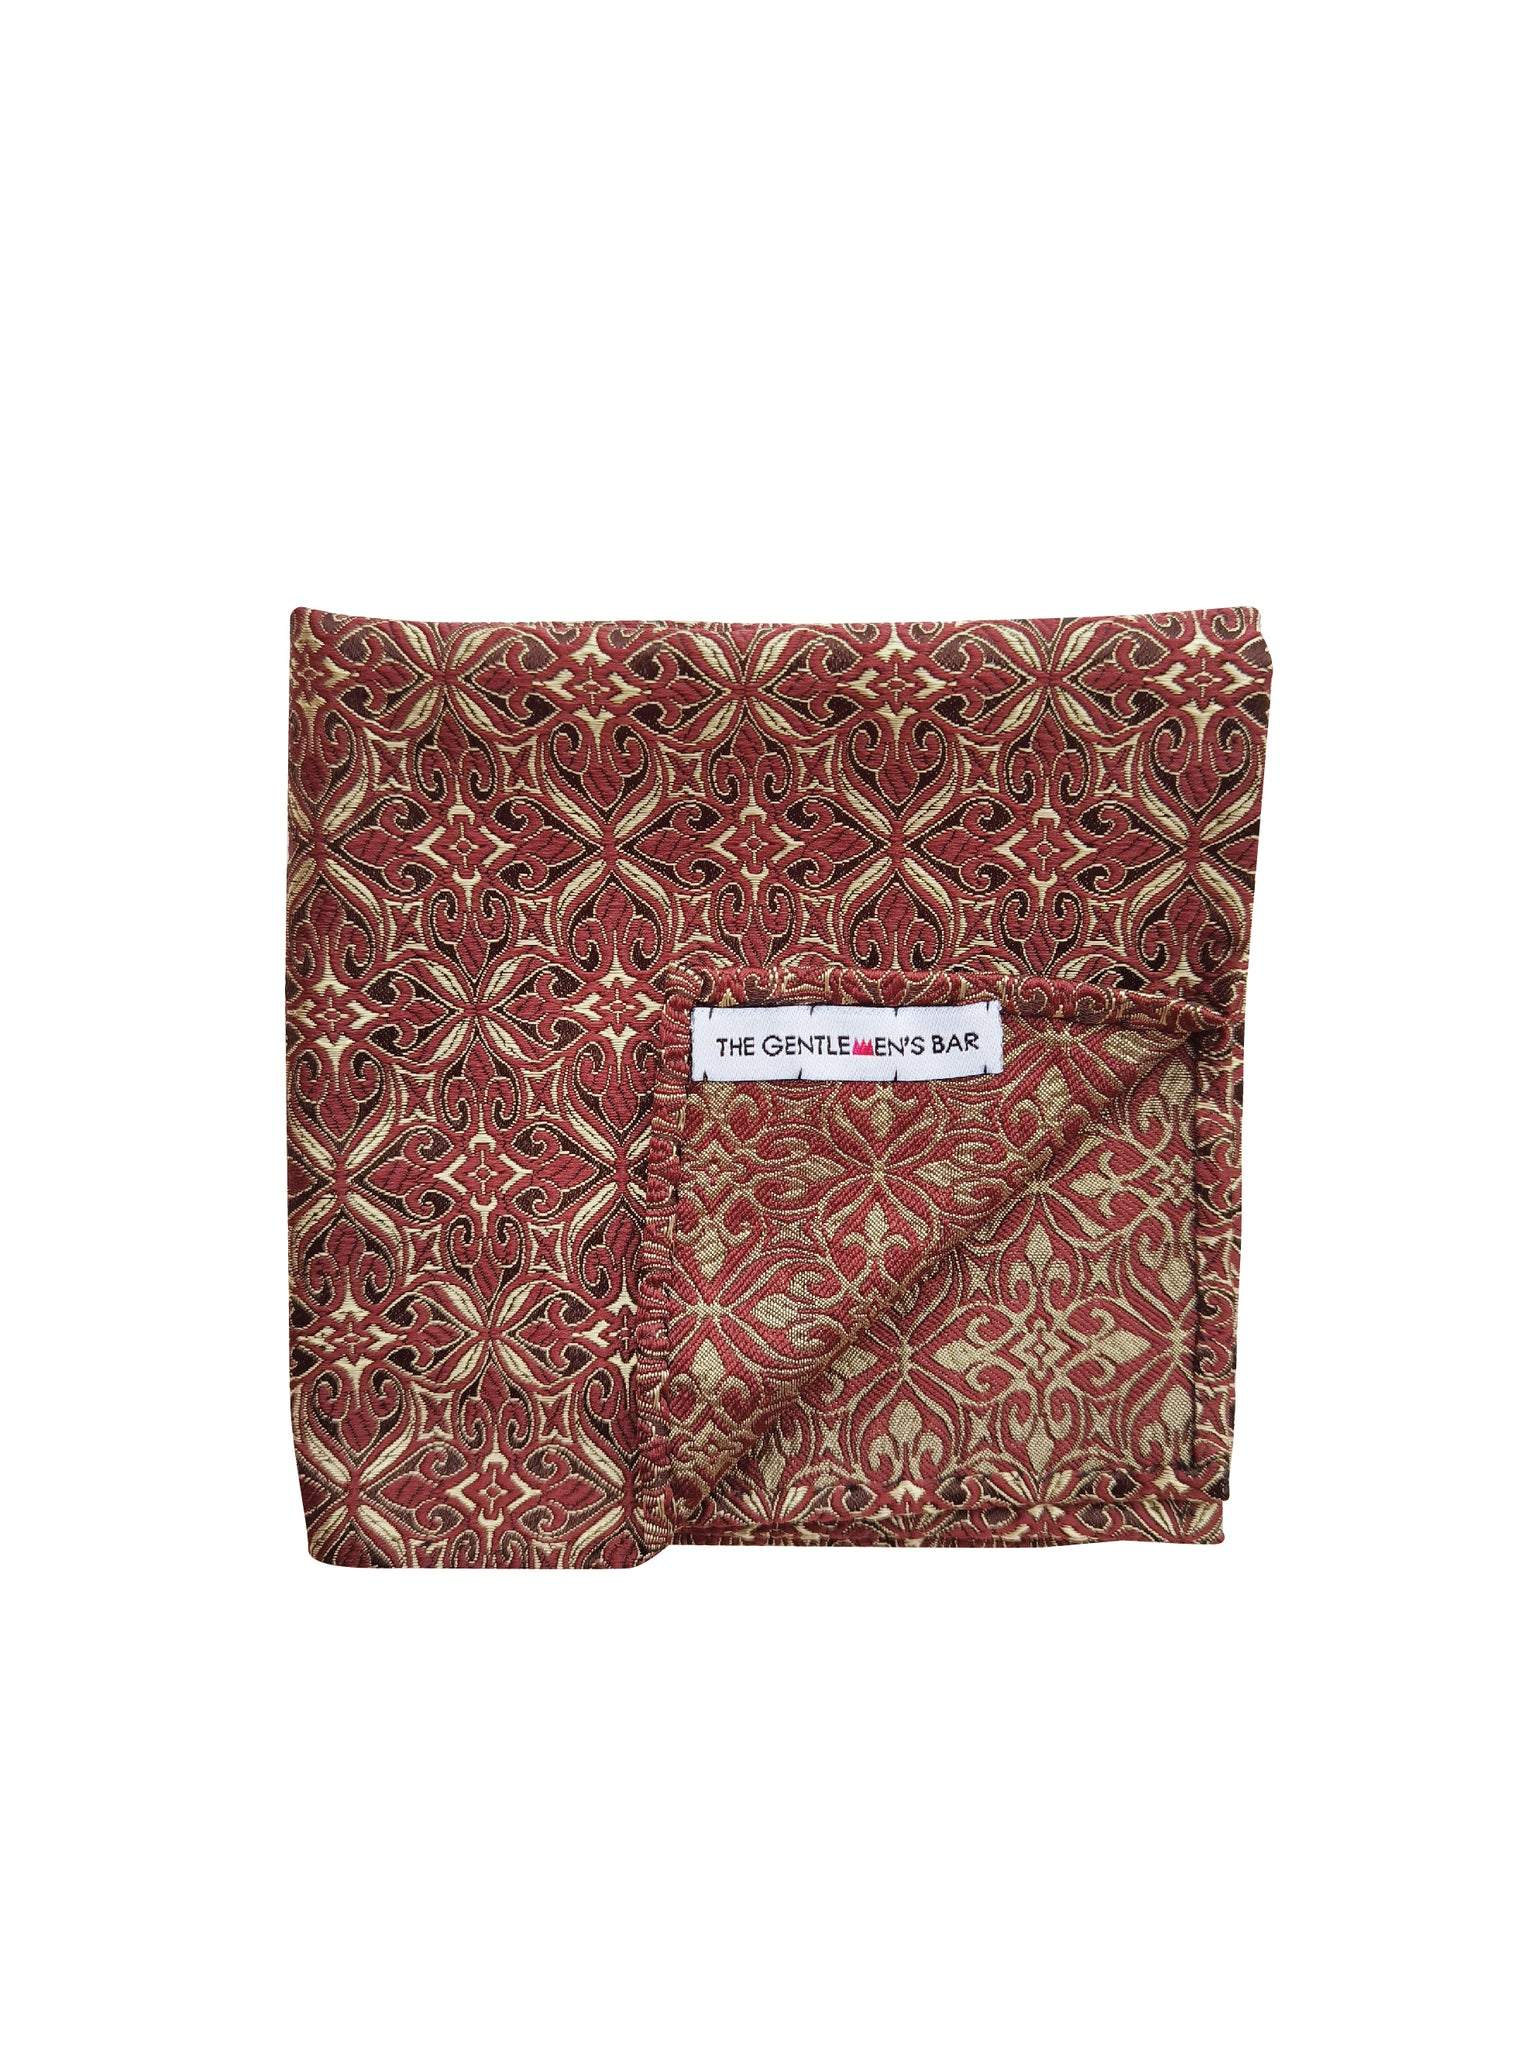 THE SOLDATE BR POCKET SQUARE